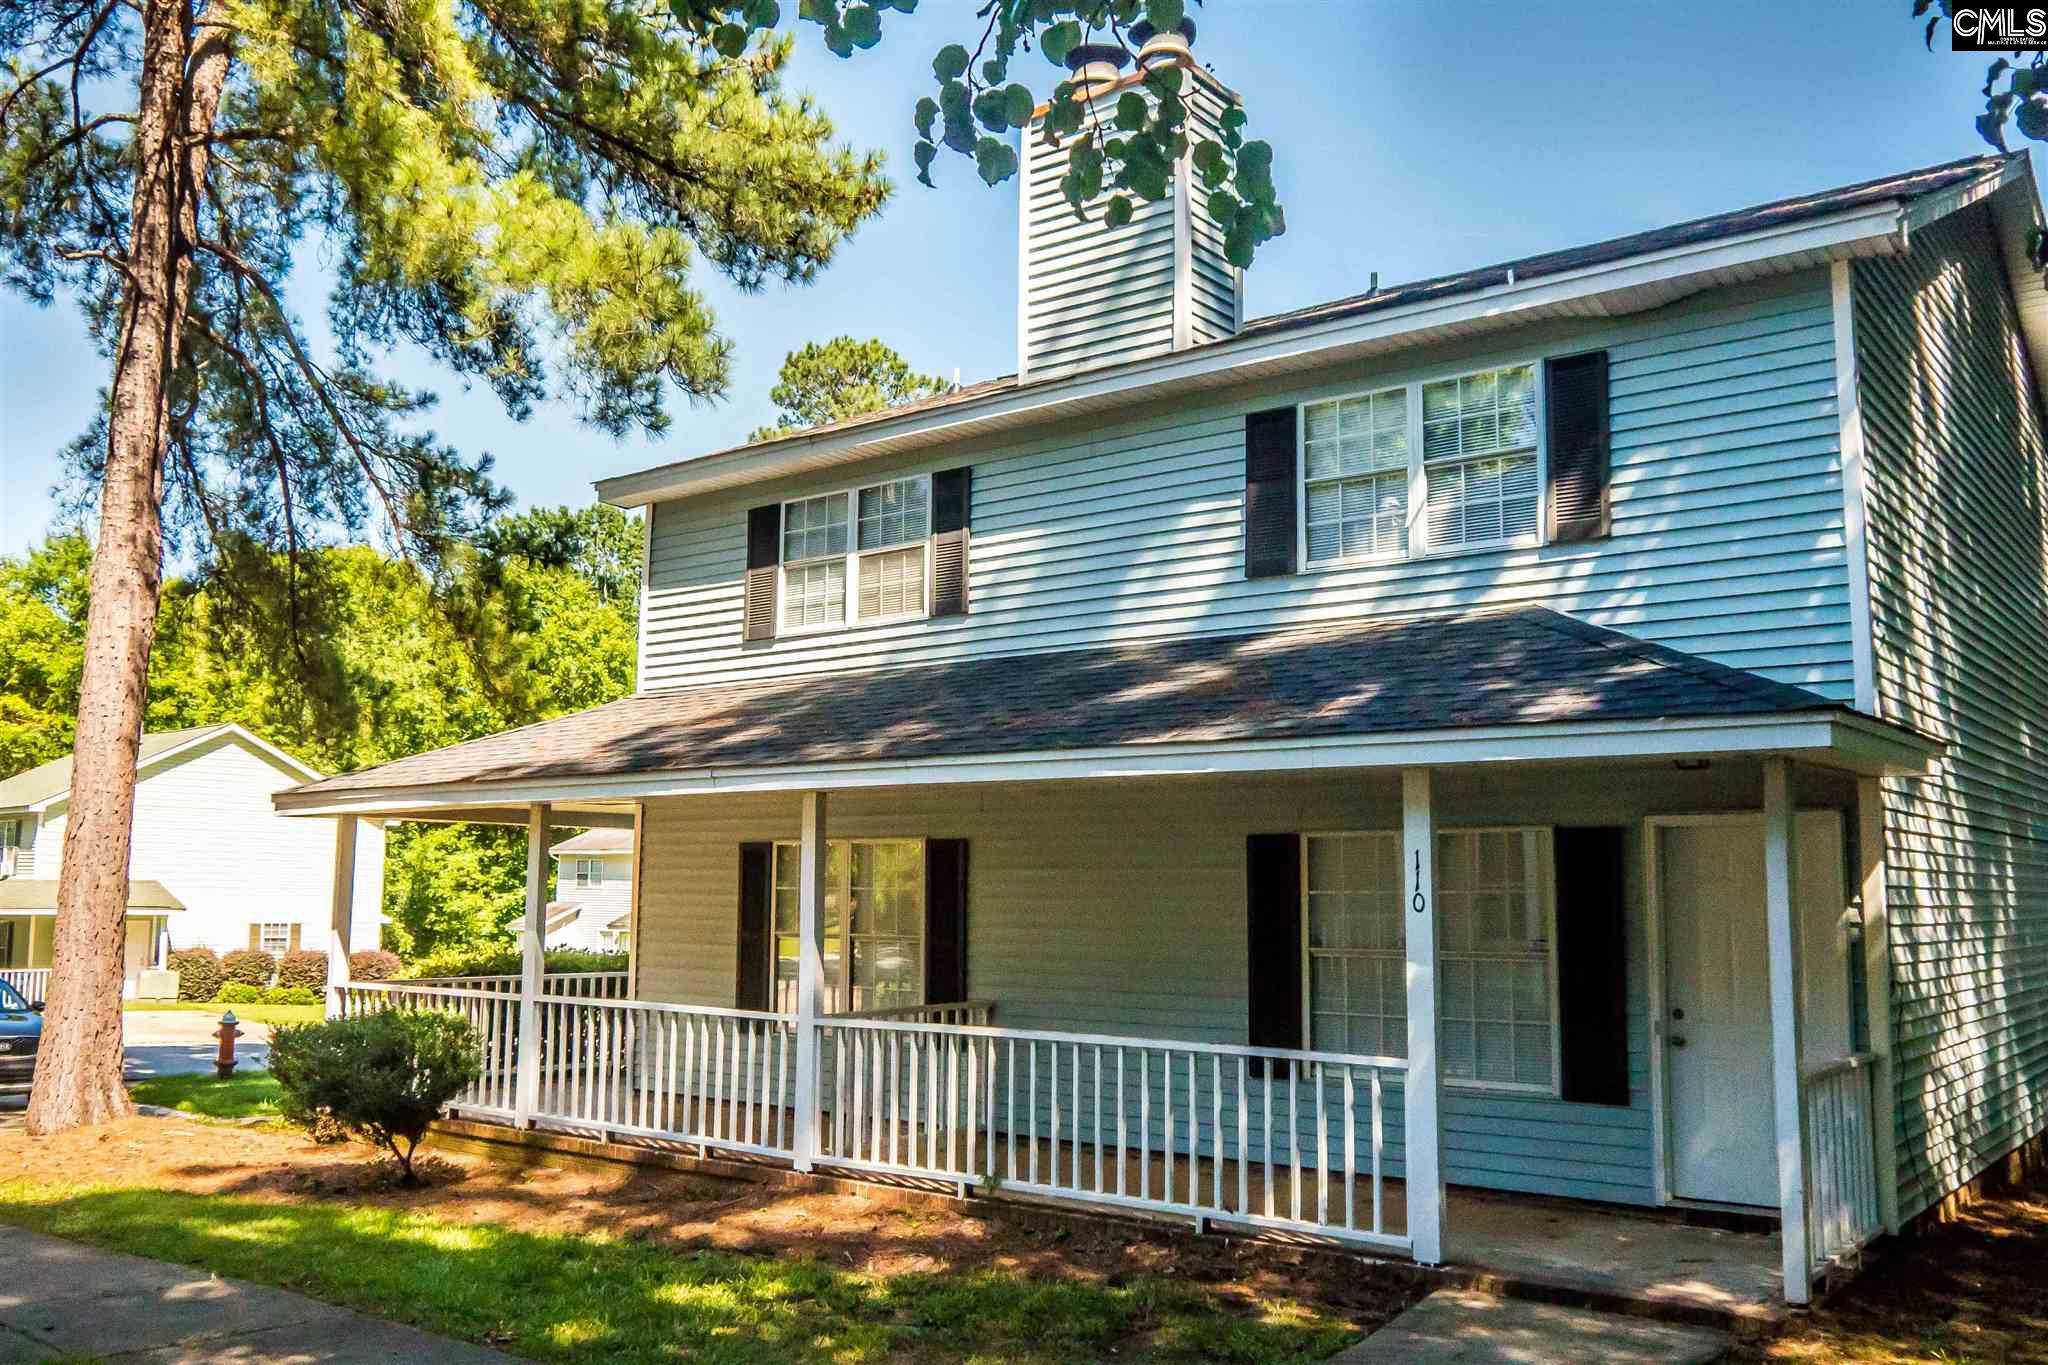 108-110 Country Town Columbia, SC 29212